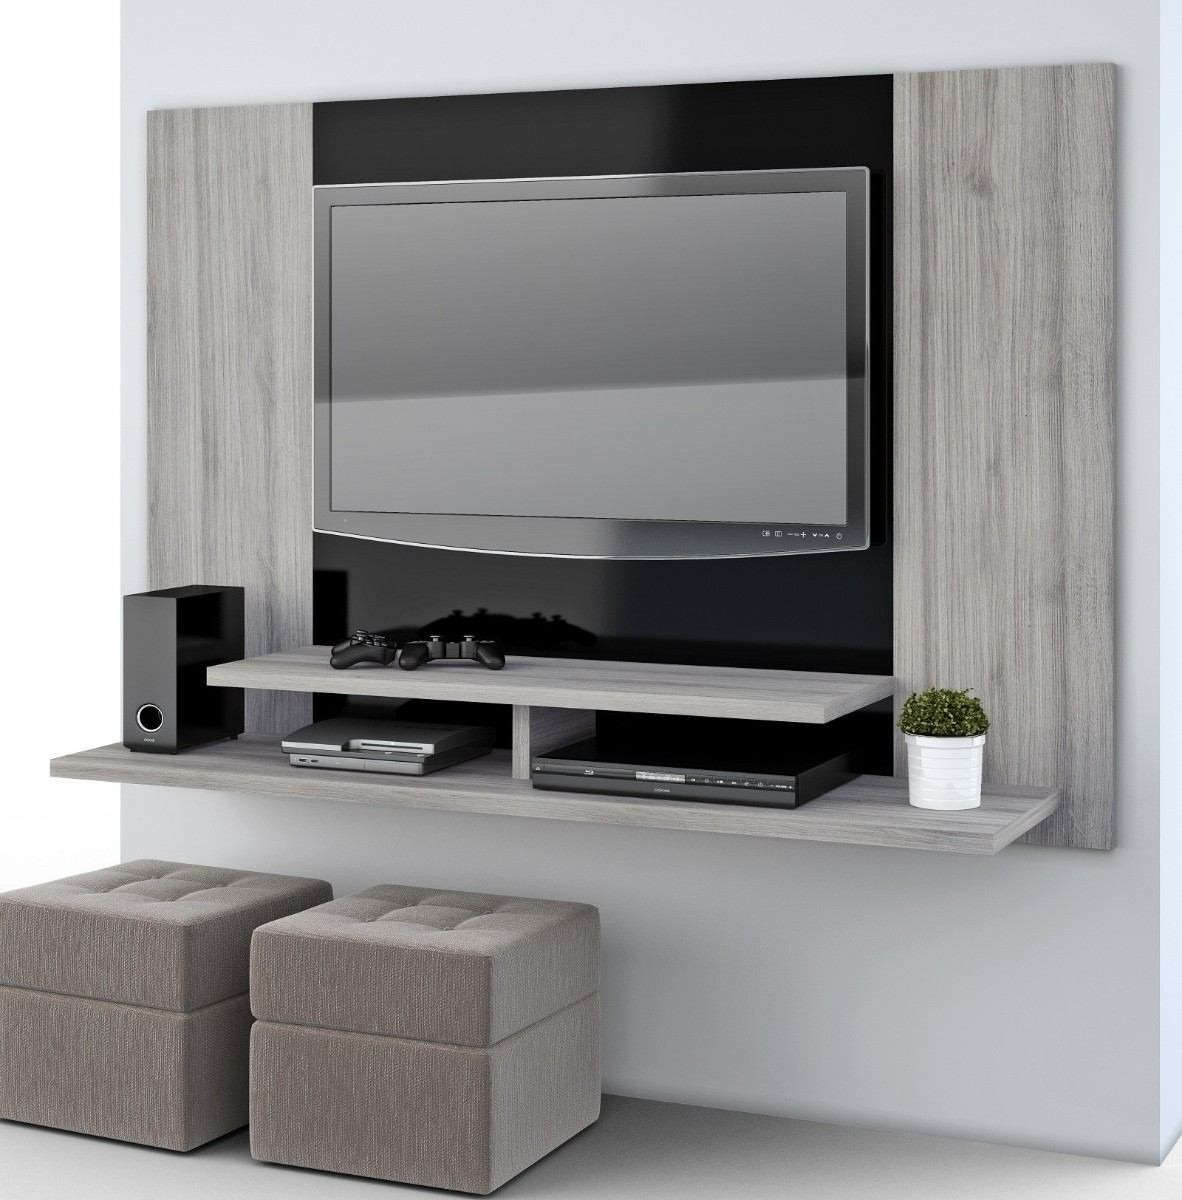 Mueble flotante para tv moderno ref manhatan for Muebles para el tv